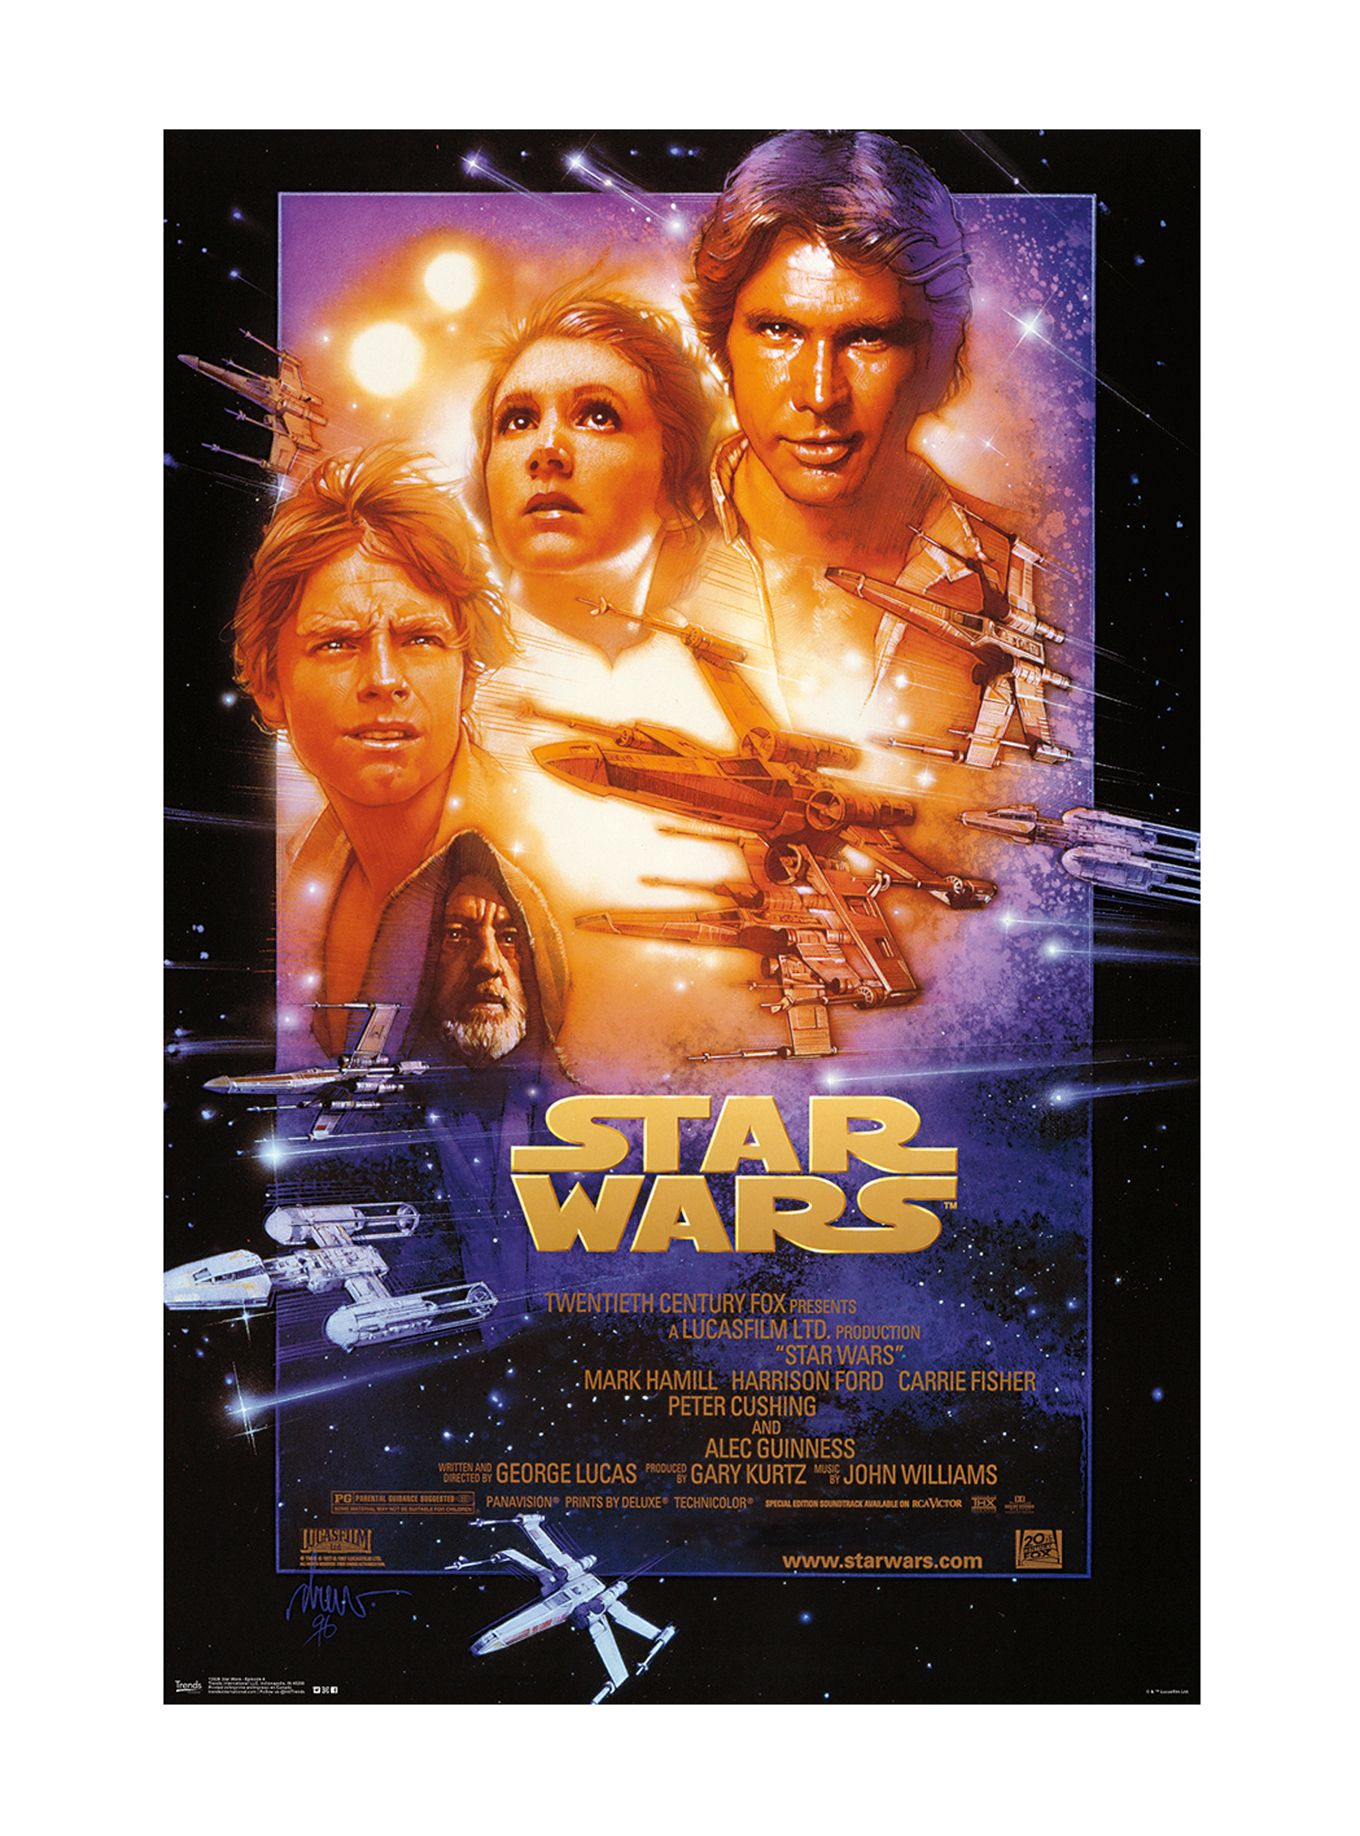 Star Wars Episode Iv A New Hope Poster Star Wars Movies Posters Star Wars Episode 4 Star Wars Episodes